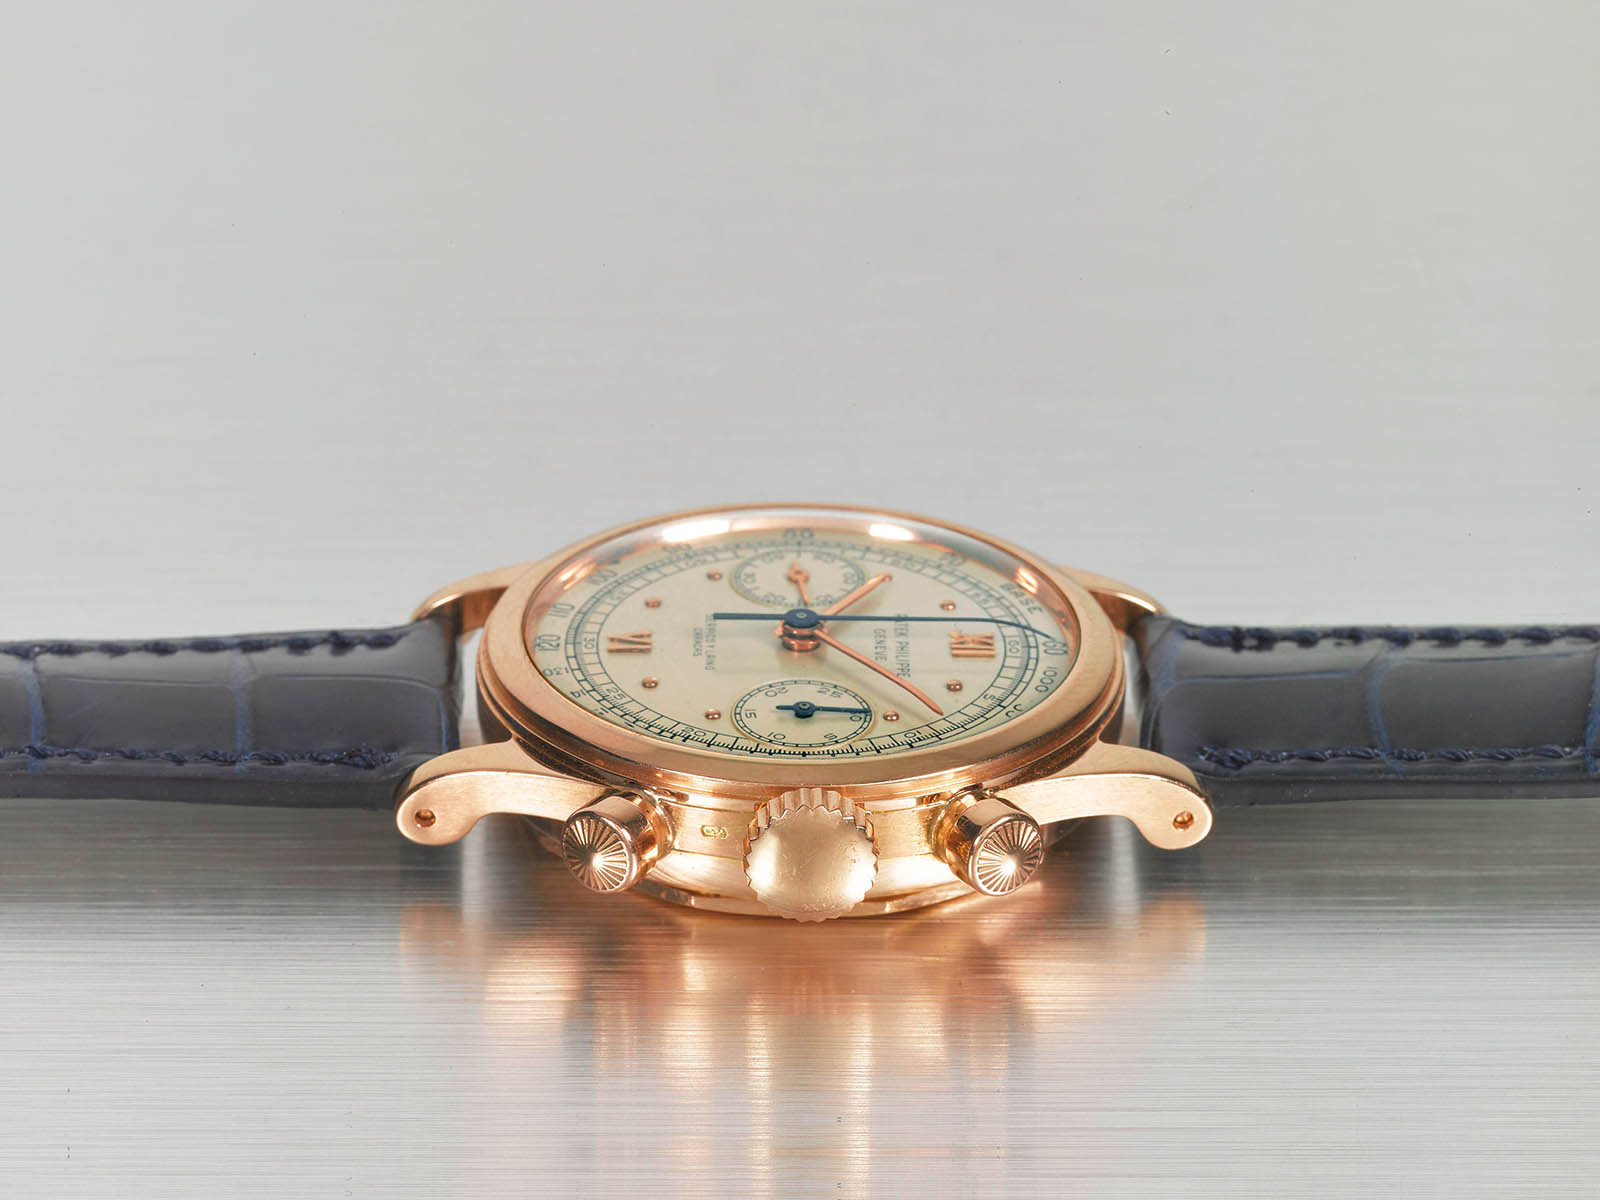 1463-patek-philippe-18k-pink-gold-chronograph-wristwatch-3.jpg